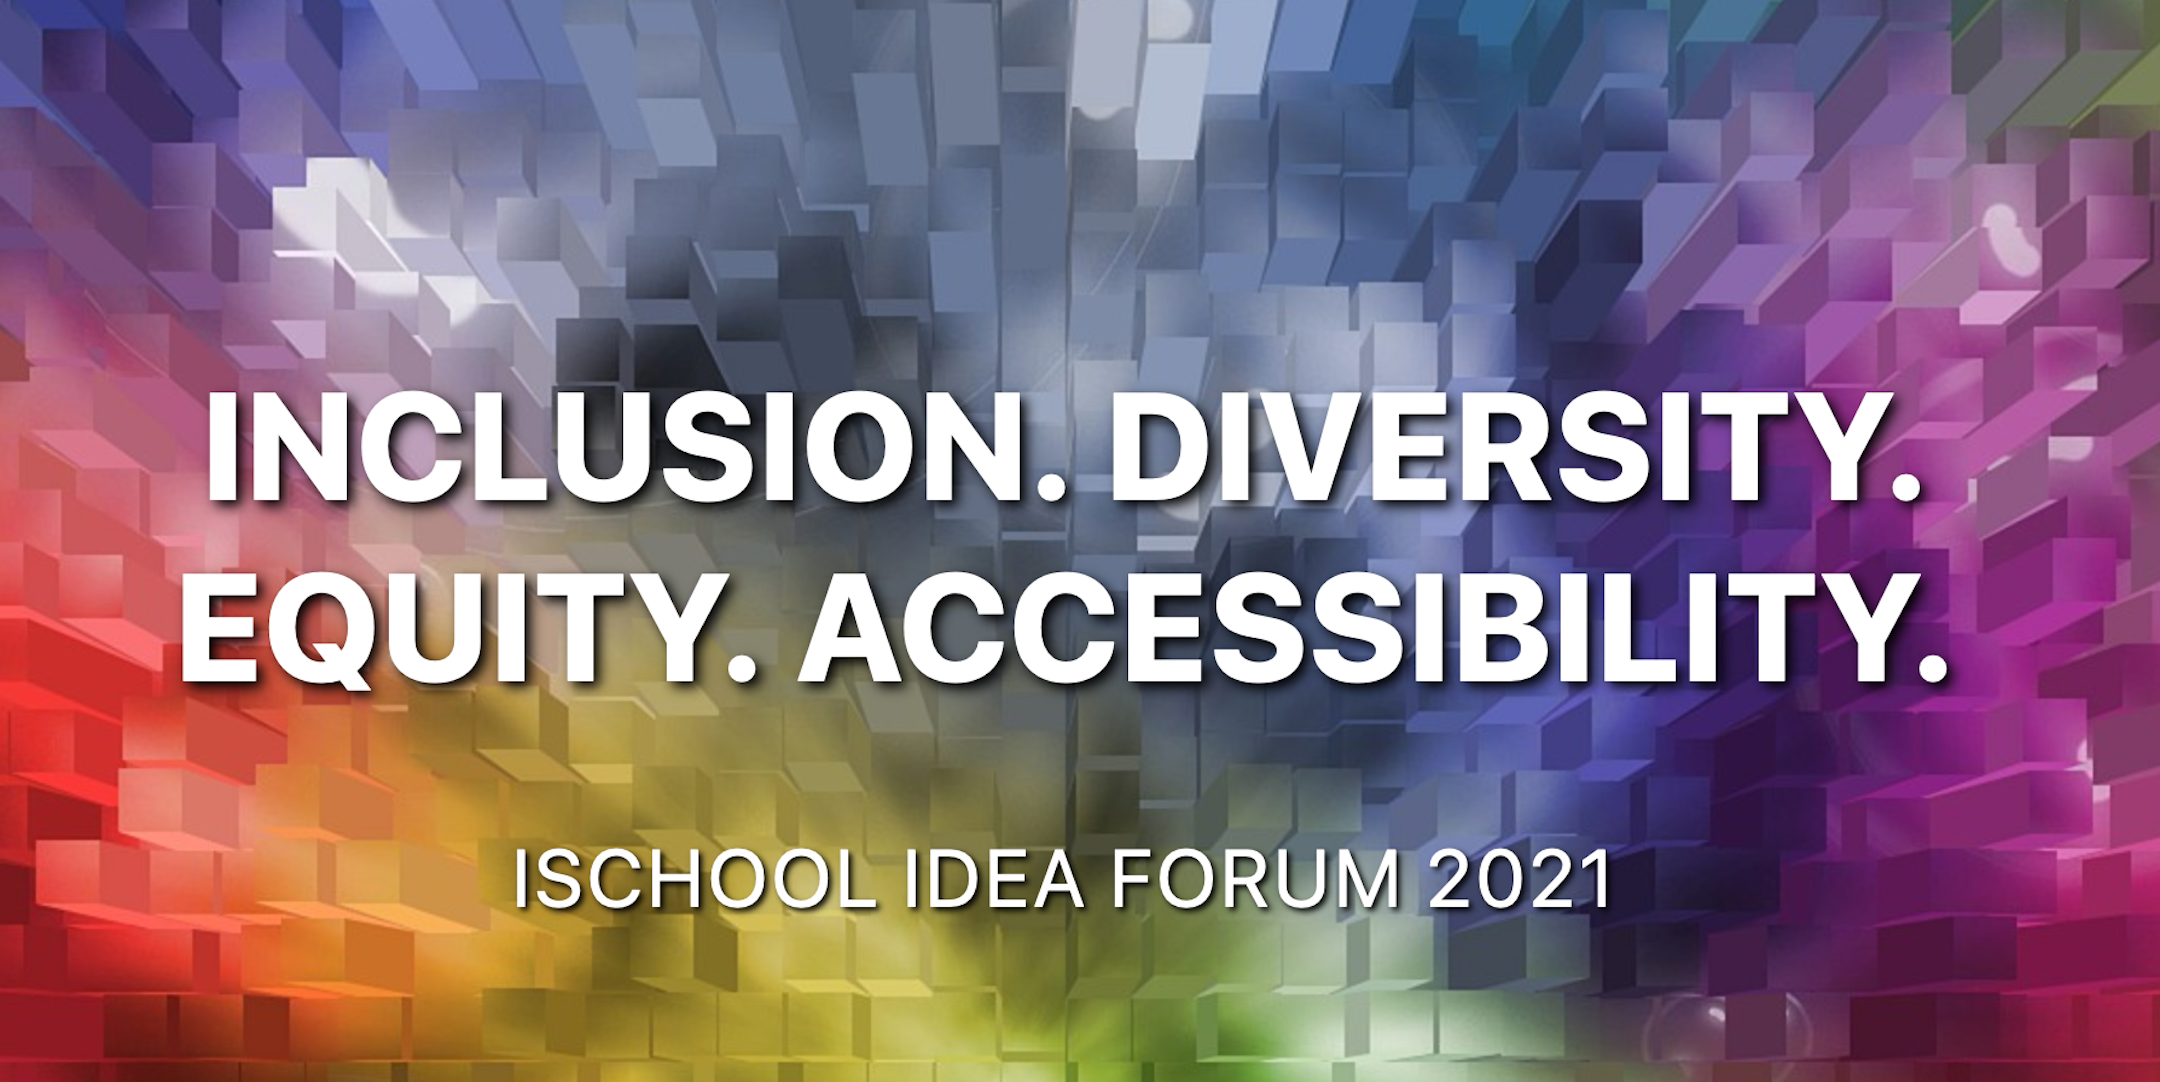 Inclusion, Diversity, Equity, Accessibility - ISchool IDEA Forum 2021